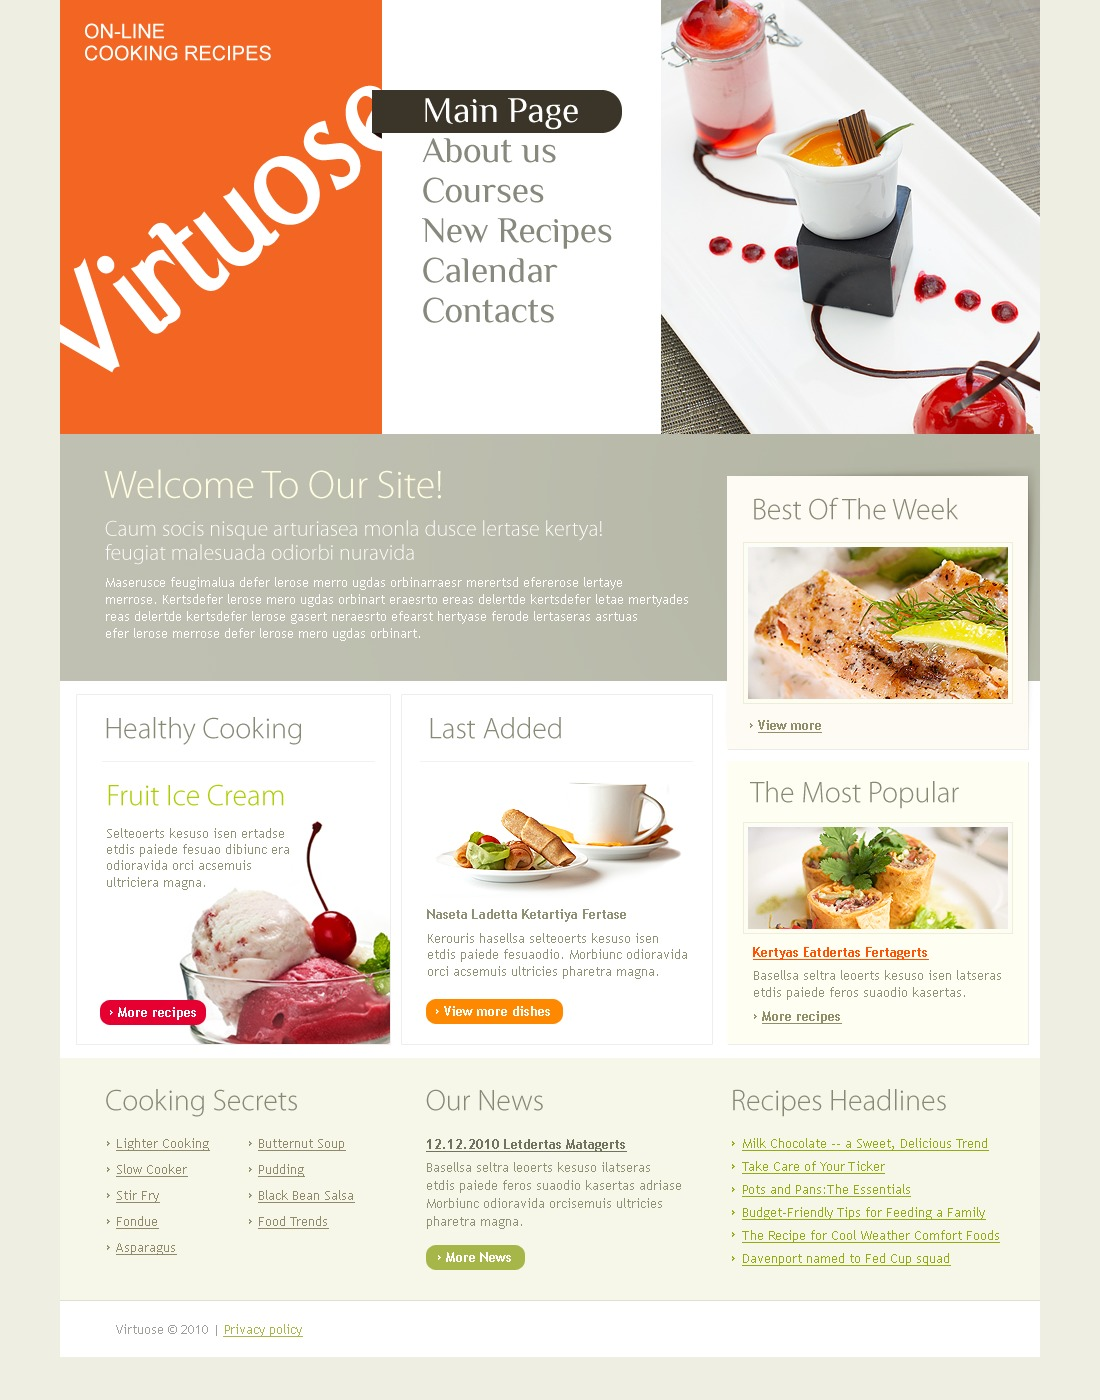 The Virtuose Cooking Recipes PSD Design 54194, one of the best PSD templates of its kind (food & drink, flash 8, wide), also known as virtuose cooking recipes PSD template, cooking recipes PSD template, webpage PSD template, site PSD template, information PSD template, events PSD template, archive PSD template, links PSD template, guestbook PSD template, journal PSD template, visitors PSD template, opinion PSD template, discussion blogroll restaurants PSD template, cuisine PSD template, flavour kitchen PSD template, cookbook PSD template, vegetarian PSD template, healthy PSD template, cocktail PSD template, drink PSD template, technique PSD template, delivery PSD template, ingredients PSD template, dis and related with virtuose cooking recipes, cooking recipes, webpage, site, information, events, archive, links, guestbook, journal, visitors, opinion, discussion blogroll restaurants, cuisine, flavour kitchen, cookbook, vegetarian, healthy, cocktail, drink, technique, delivery, ingredients, dis, etc.